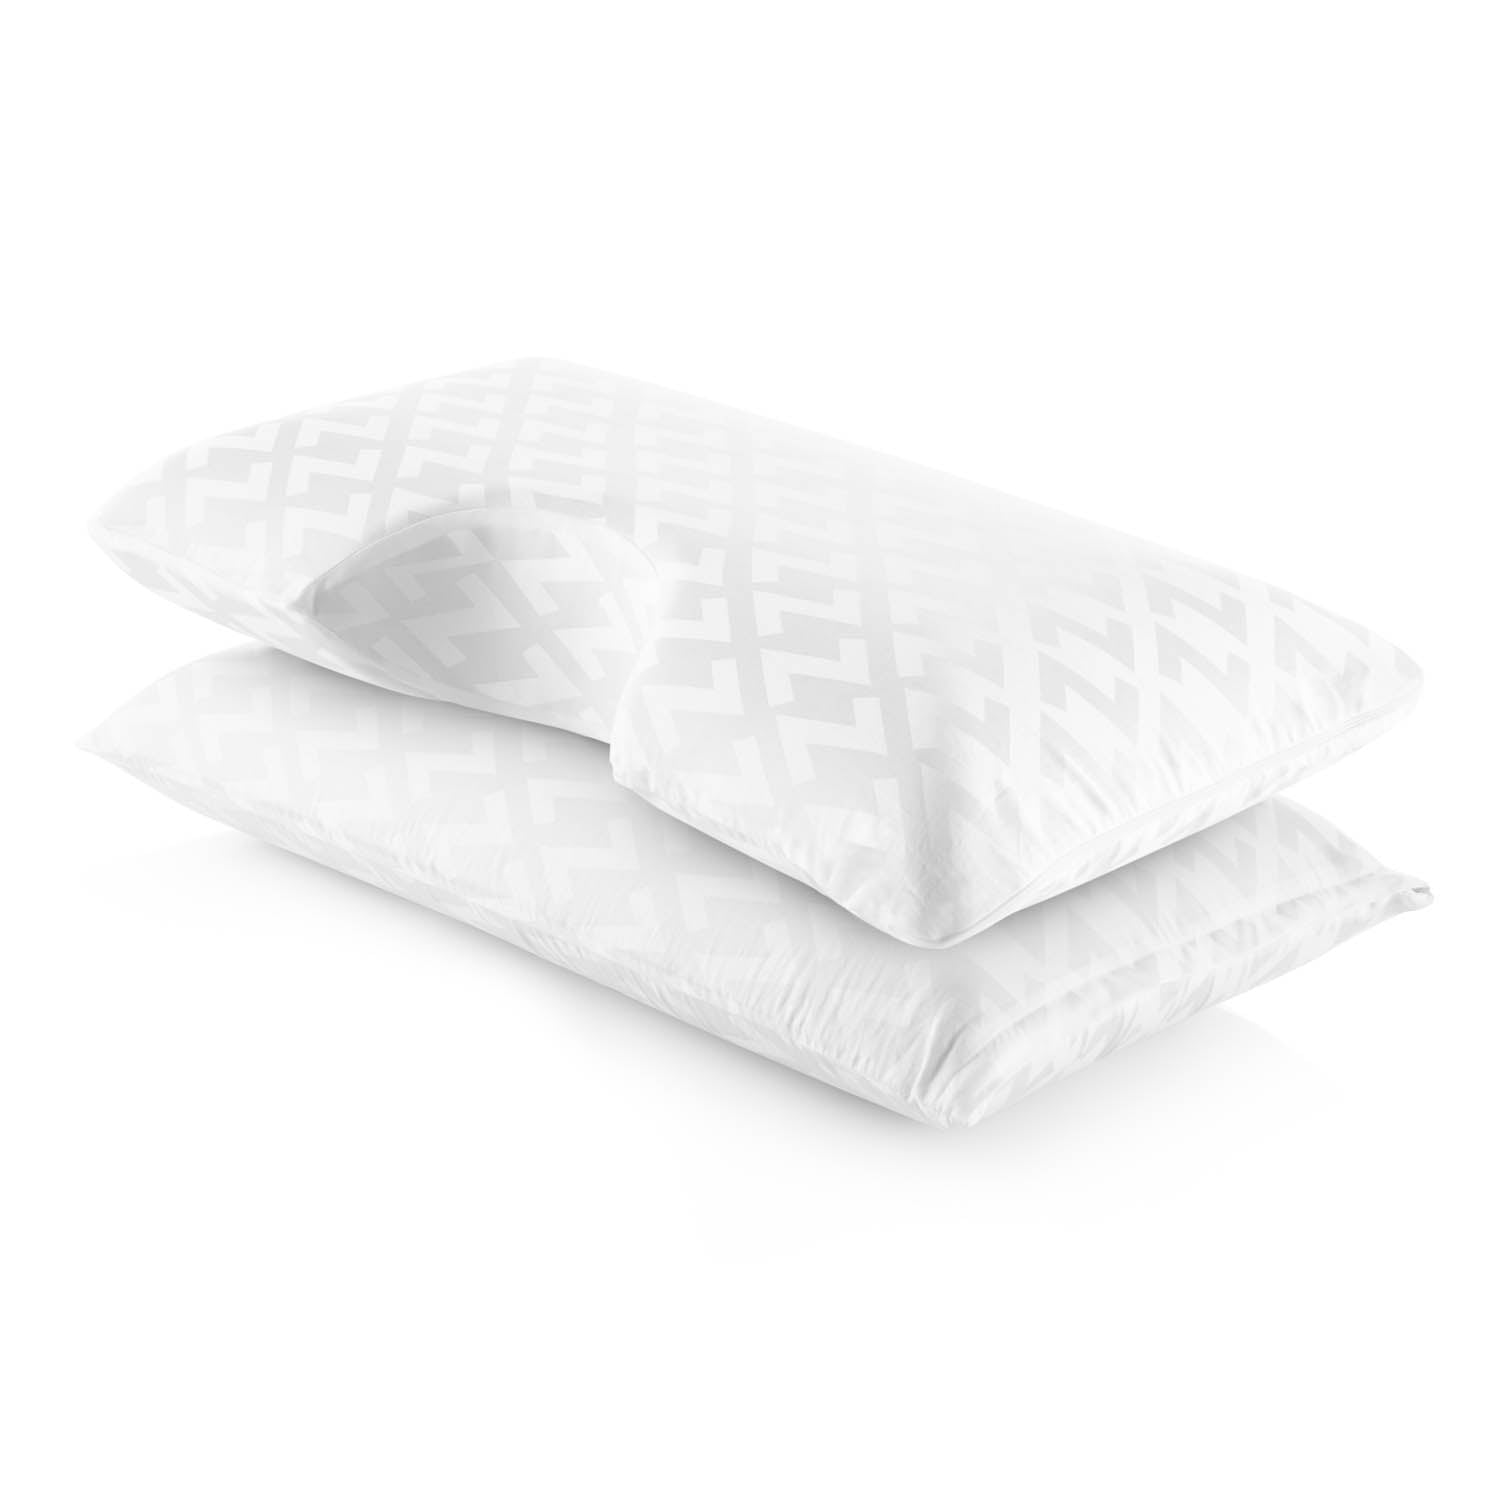 Malouf Tencel® Pillow Replacement Cover